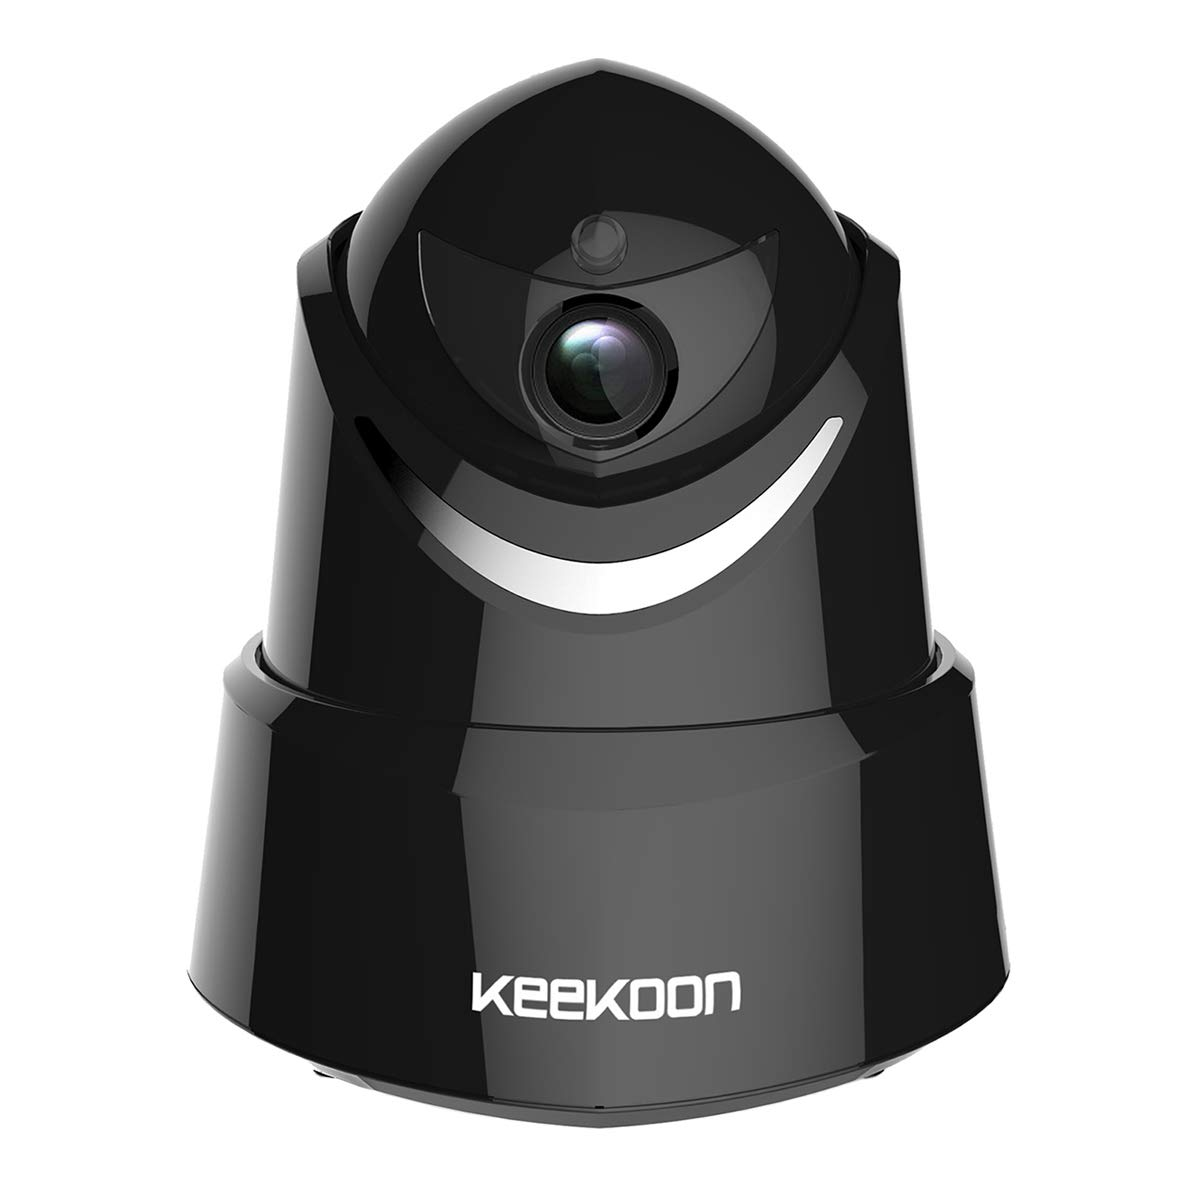 KEEKOON 1080P Security Camera, Home HD Baby Monitor IP Wireless WiFi Surveillance, Pan/Tilt, Two-Way Audio, Night Vision, Support 64g SD card